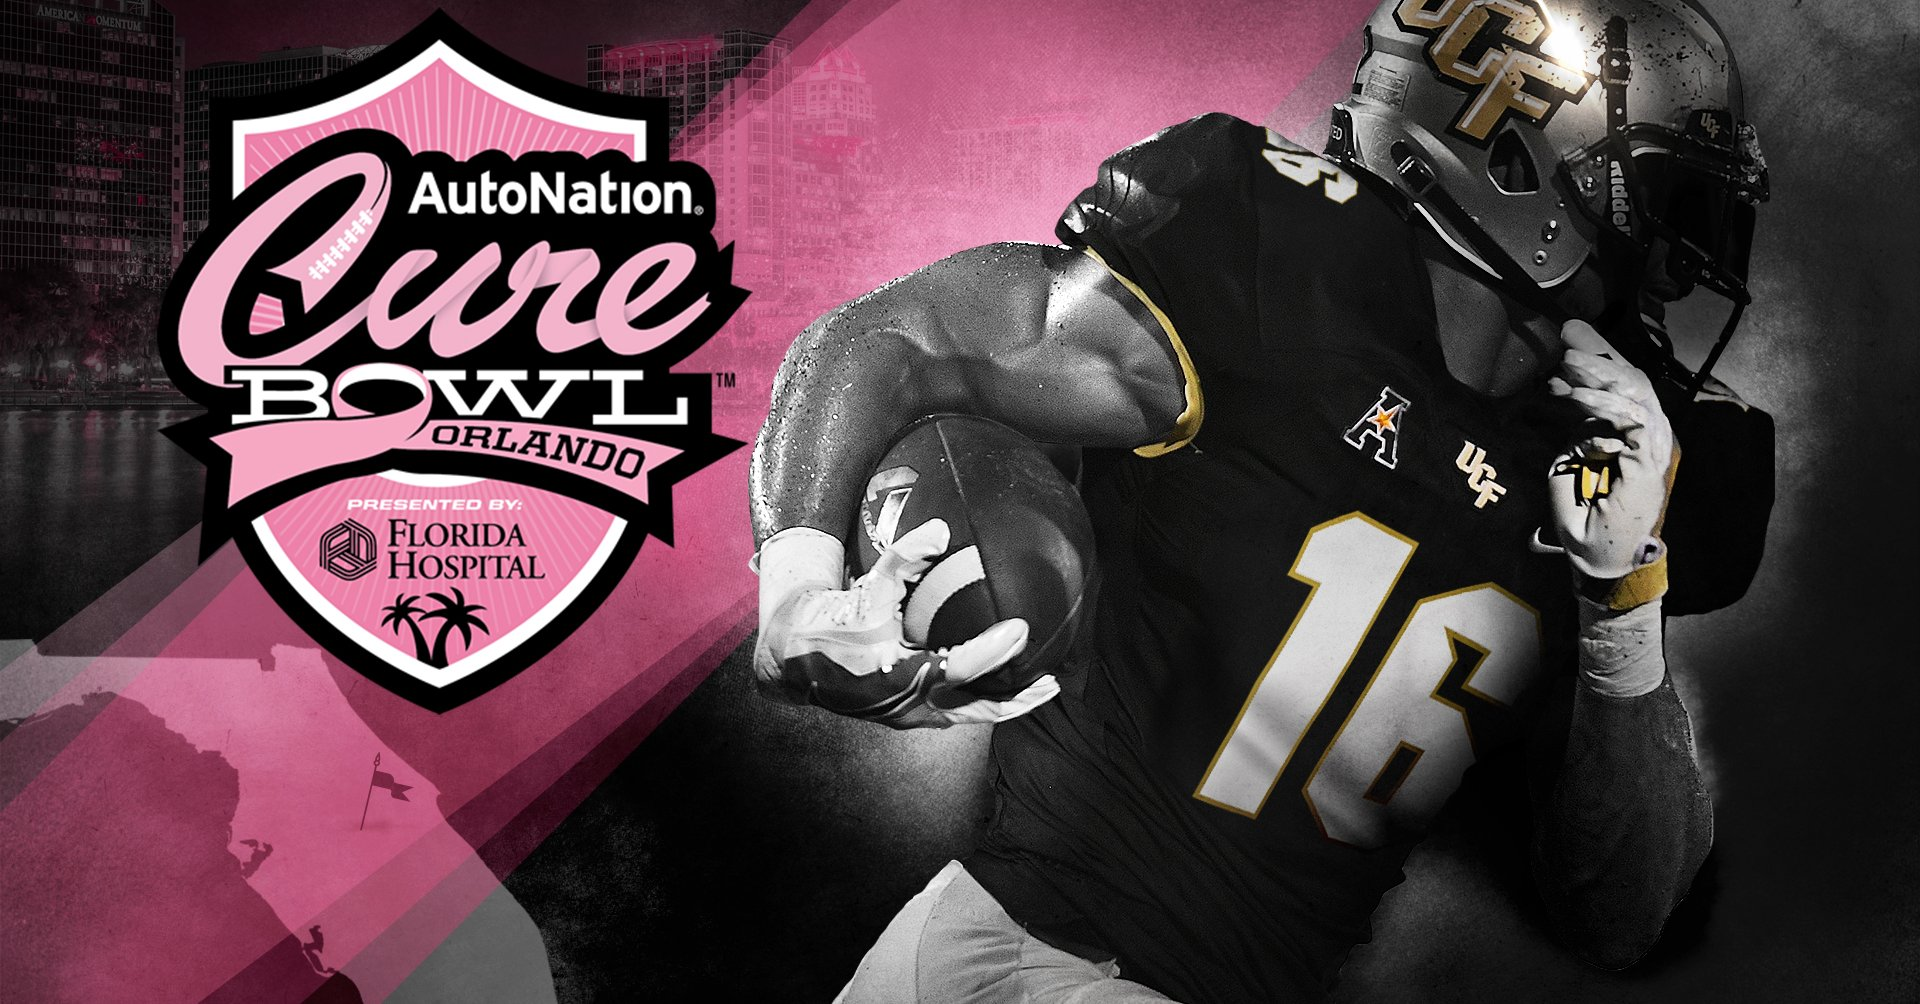 Ucf Football Scott Frost >> Knights Accept Cure Bowl Invitation - UCF News - University of Central Florida Articles ...